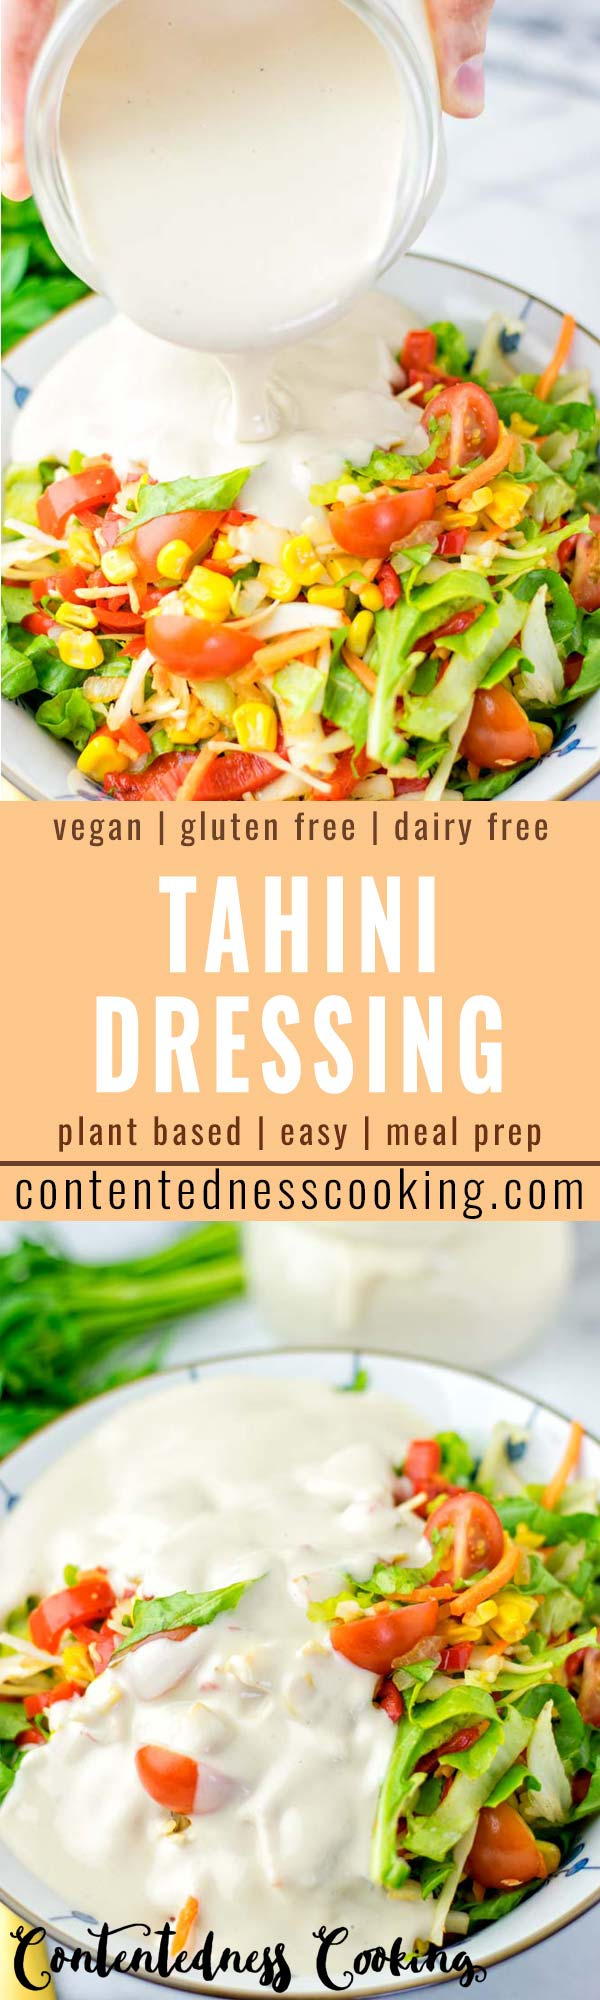 This Tahini Dressing is so delicious and easy to make. It is perfect over salad, makes any bland salad taste like a gourmet meal. It's also so versatile for pasta, potatoes and more. A keeper for dinner, lunch, meal prep ideas or just to make your vegetables so delicious. #vegan #dairyfree #vegetarian #glutenfree #tahinidressing #salad #pasta #dinner #lunch #mealprep #budgetmeals #comfortfood #contentednesscooking